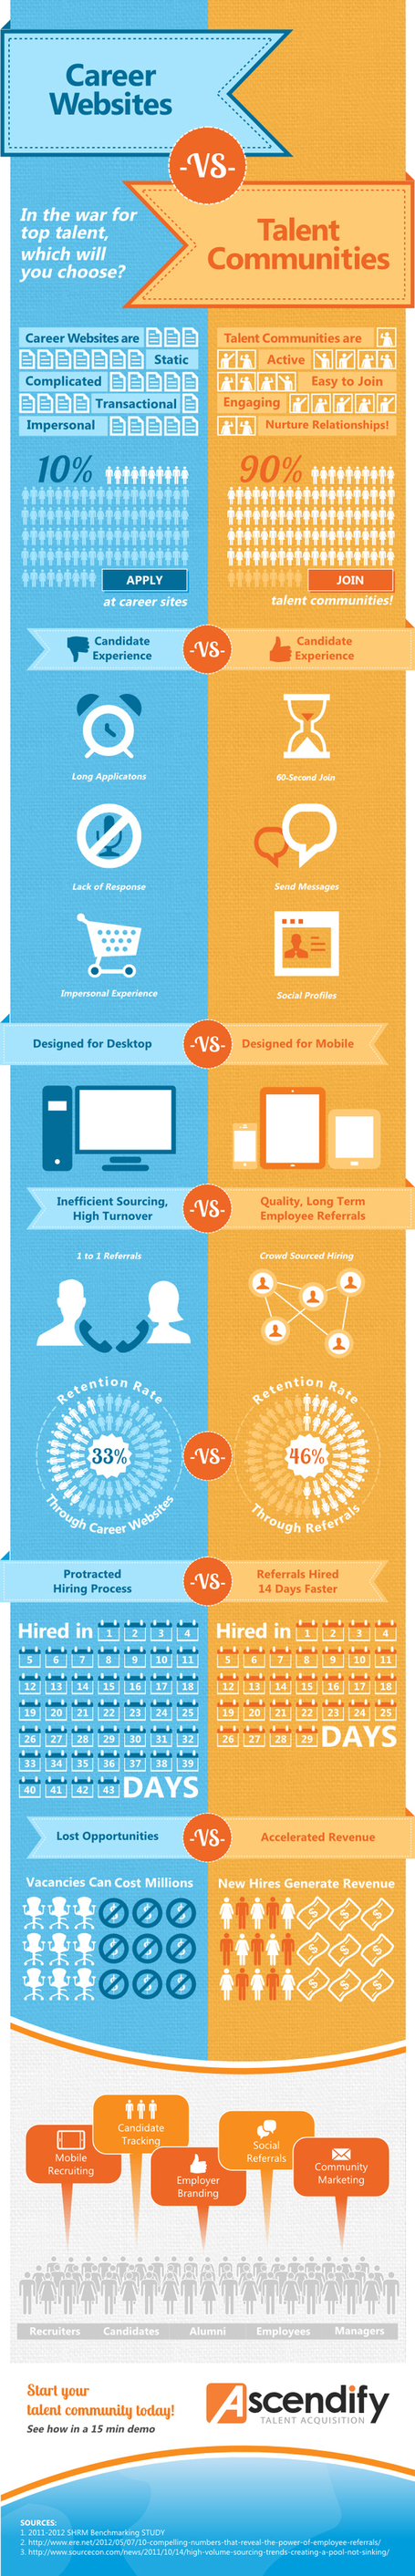 Talent Communities vs Career Websites: Which is Better? [INFOGRAPHIC] | Talent Communities | Scoop.it